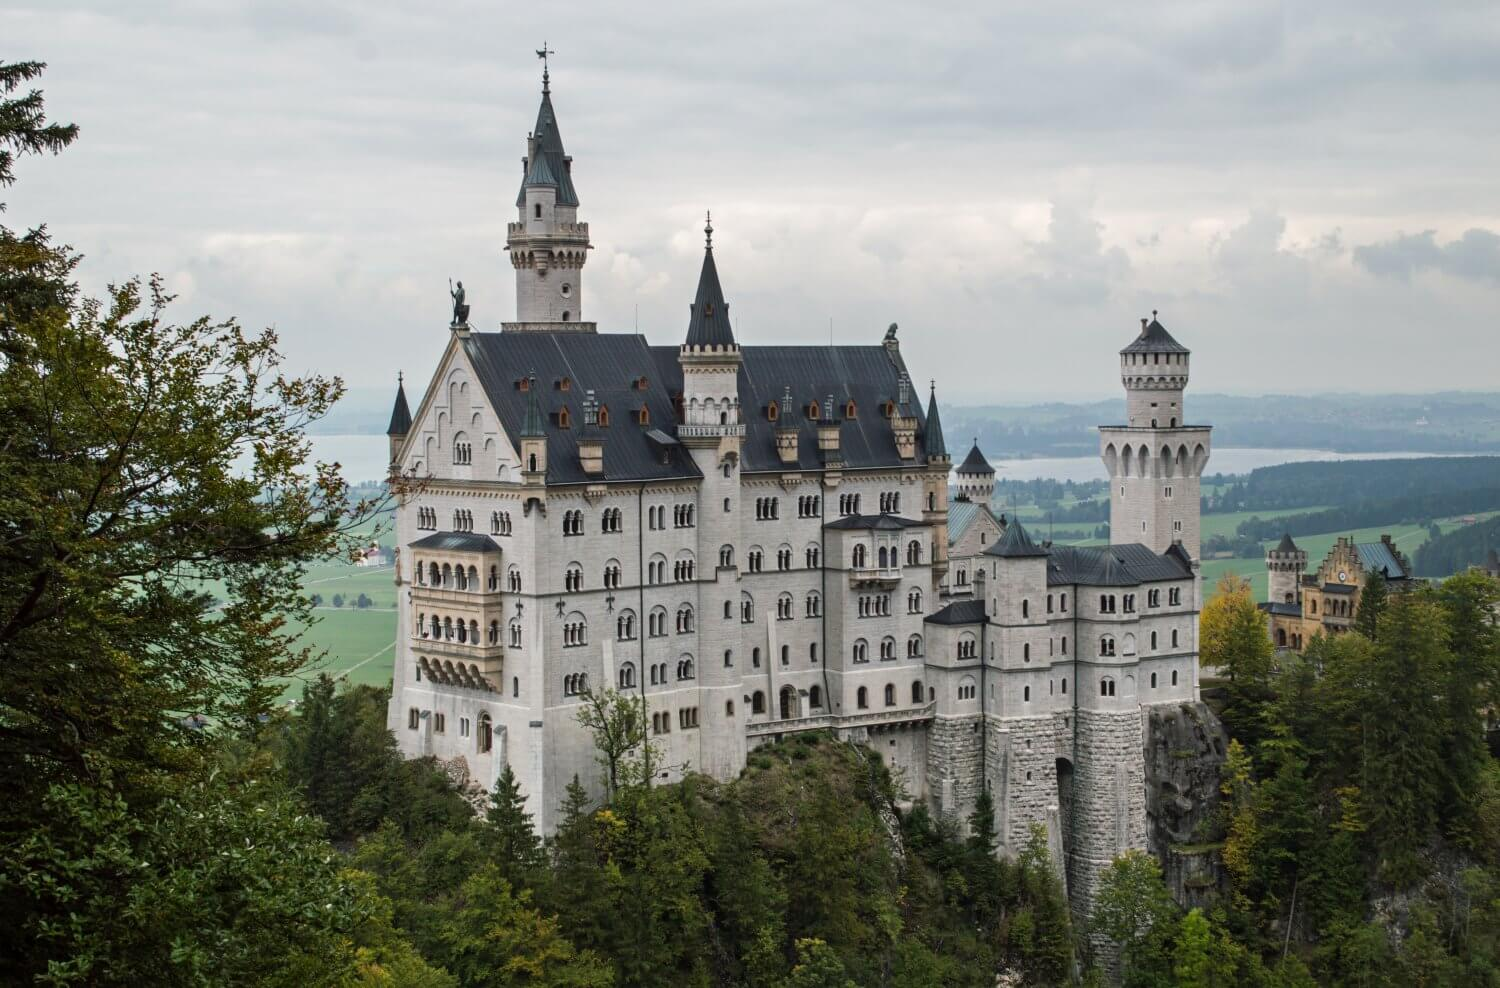 A view of Neuschwanstein Castle, Germany